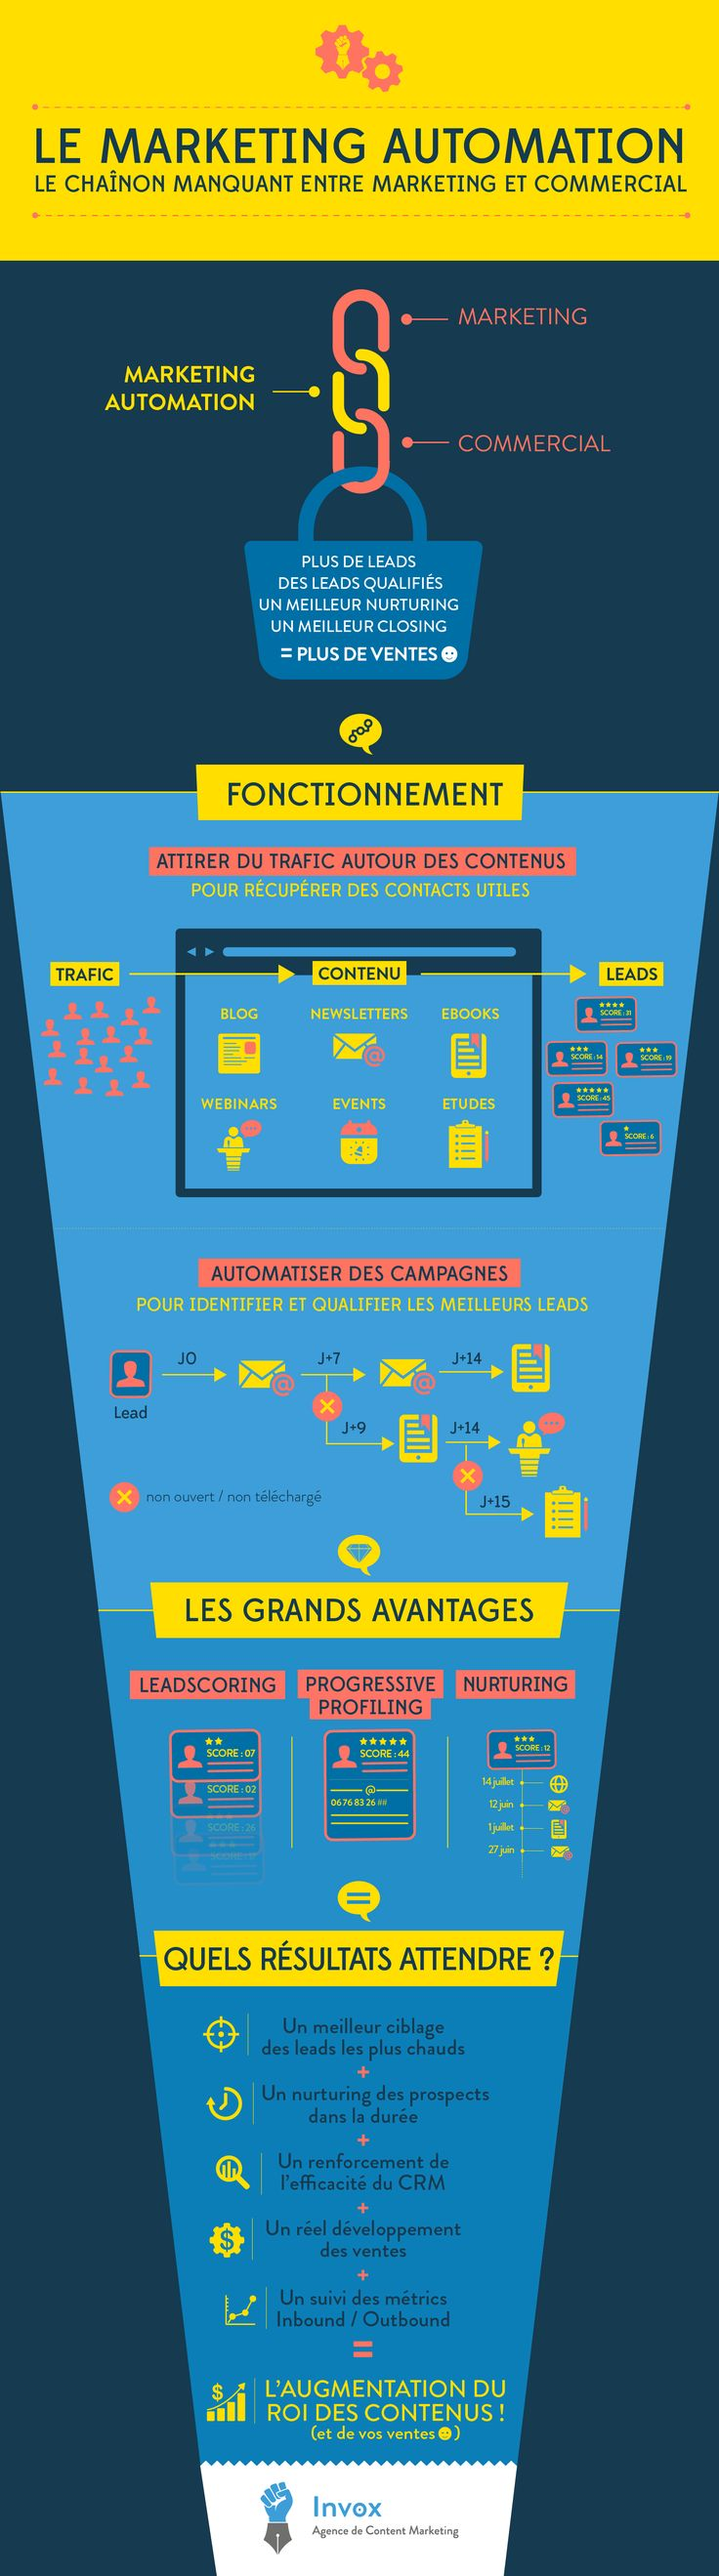 Le #MarketingAutomation, chaînon manquant entre marketing et commercial. Doit d'appuyer sur une stratégie de #ContentMarketing #FR